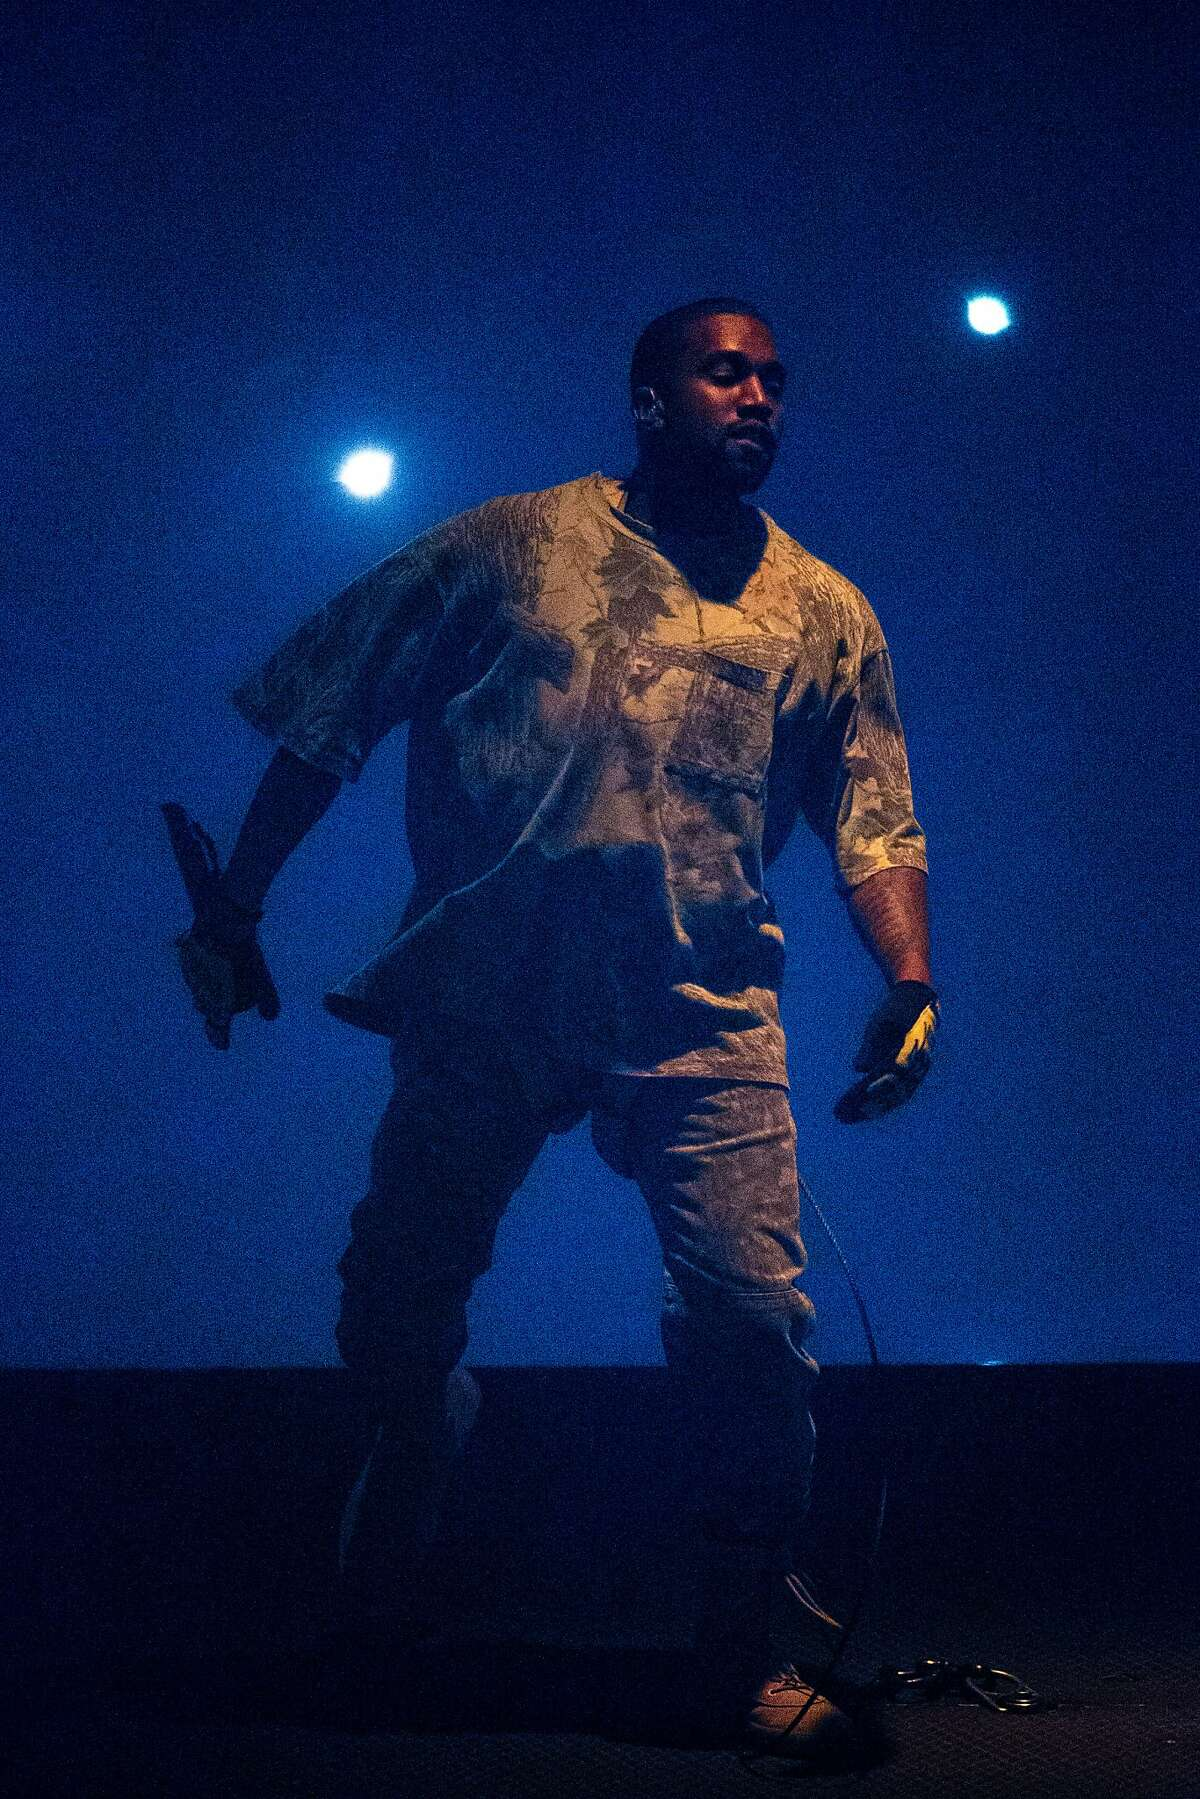 Kanye West performs during his Saint Pablo Tour at the Oracle Arena on Saturday, Oct. 22, 2016 in Oakland, Calif.